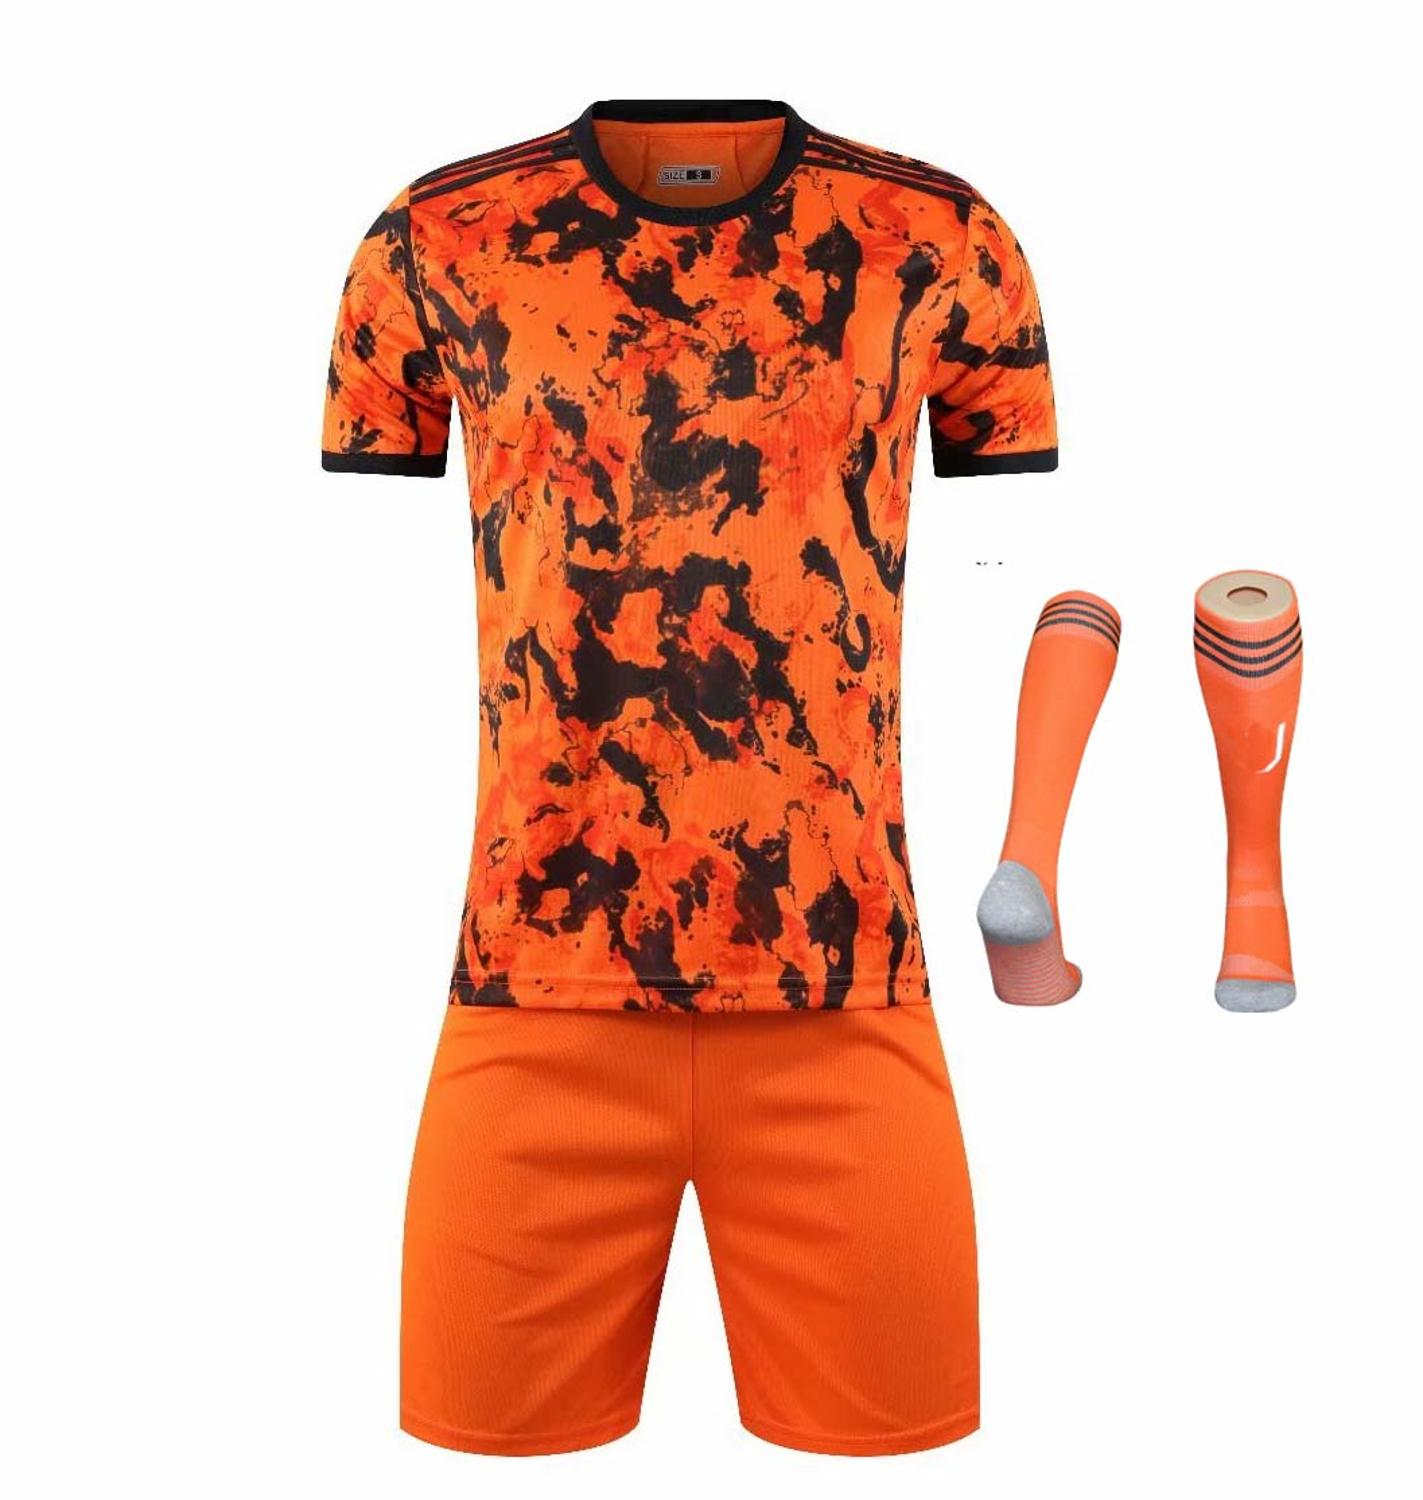 Children Sets football uniforms boys and girls sports kids youth training suits blank custom print soccer set with socks 34